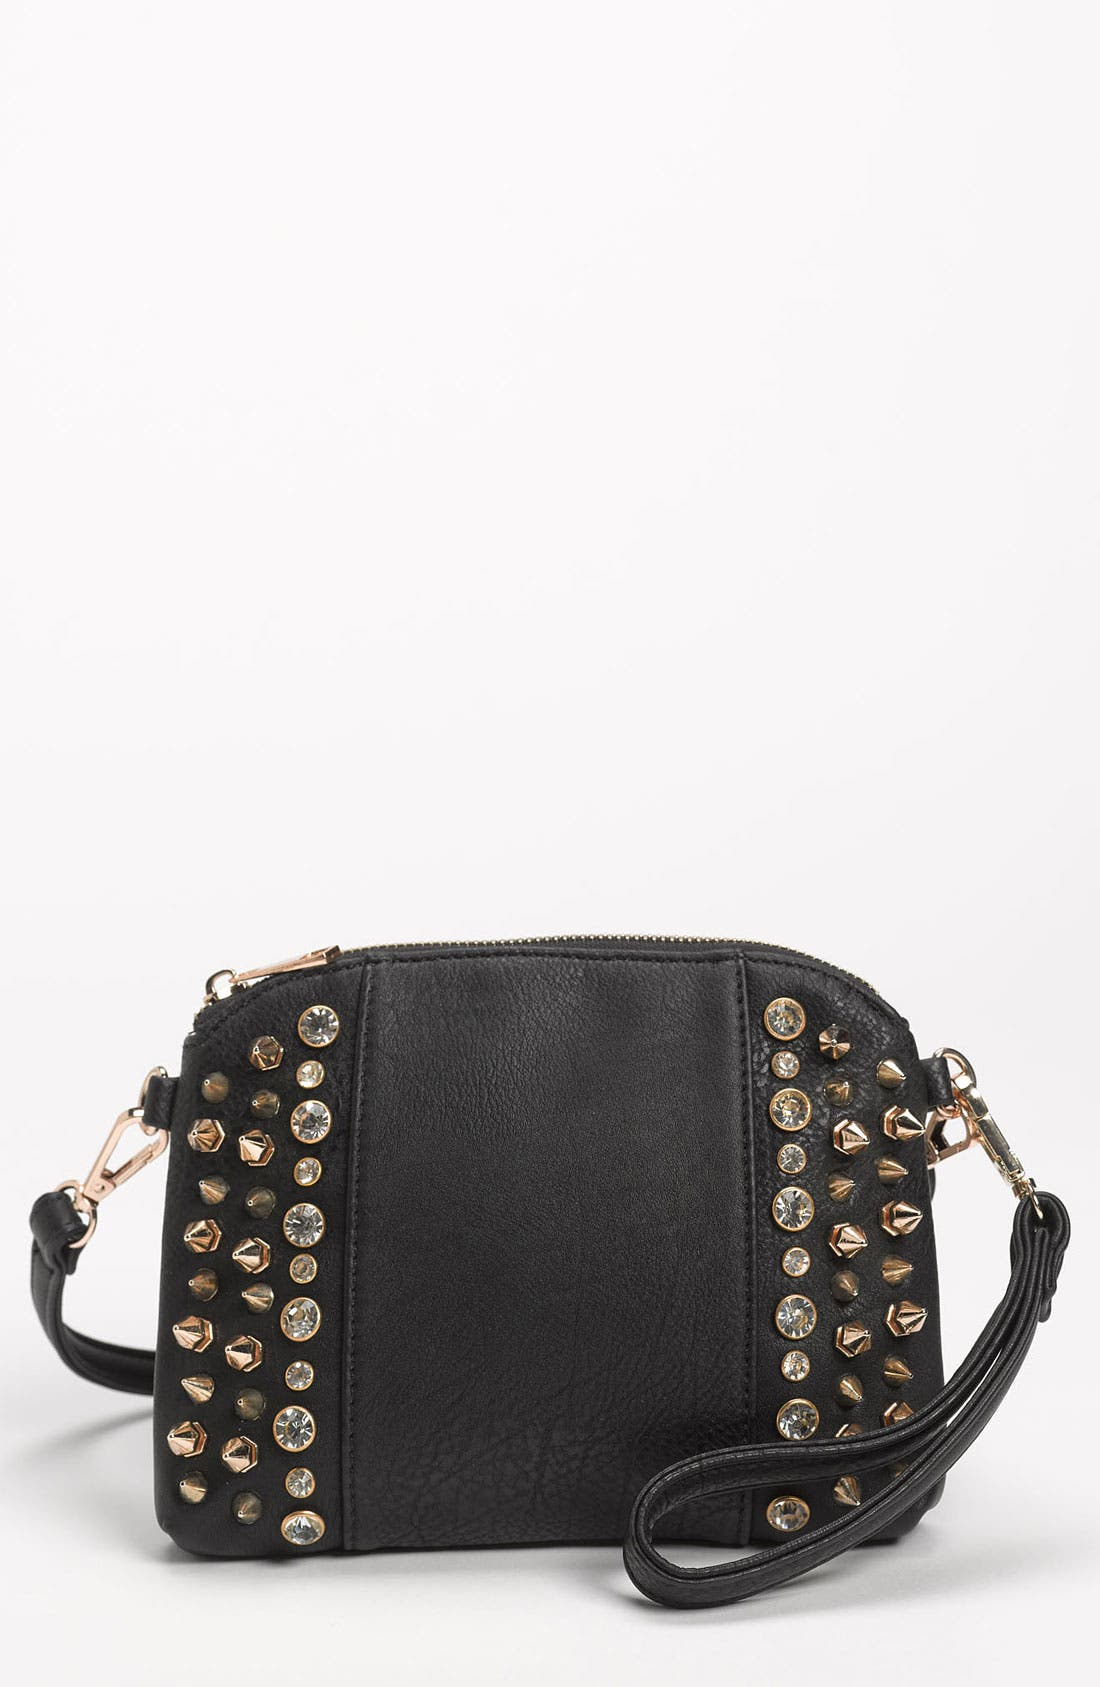 Main Image - Street Level Stud & Rhinestone Convertible Clutch